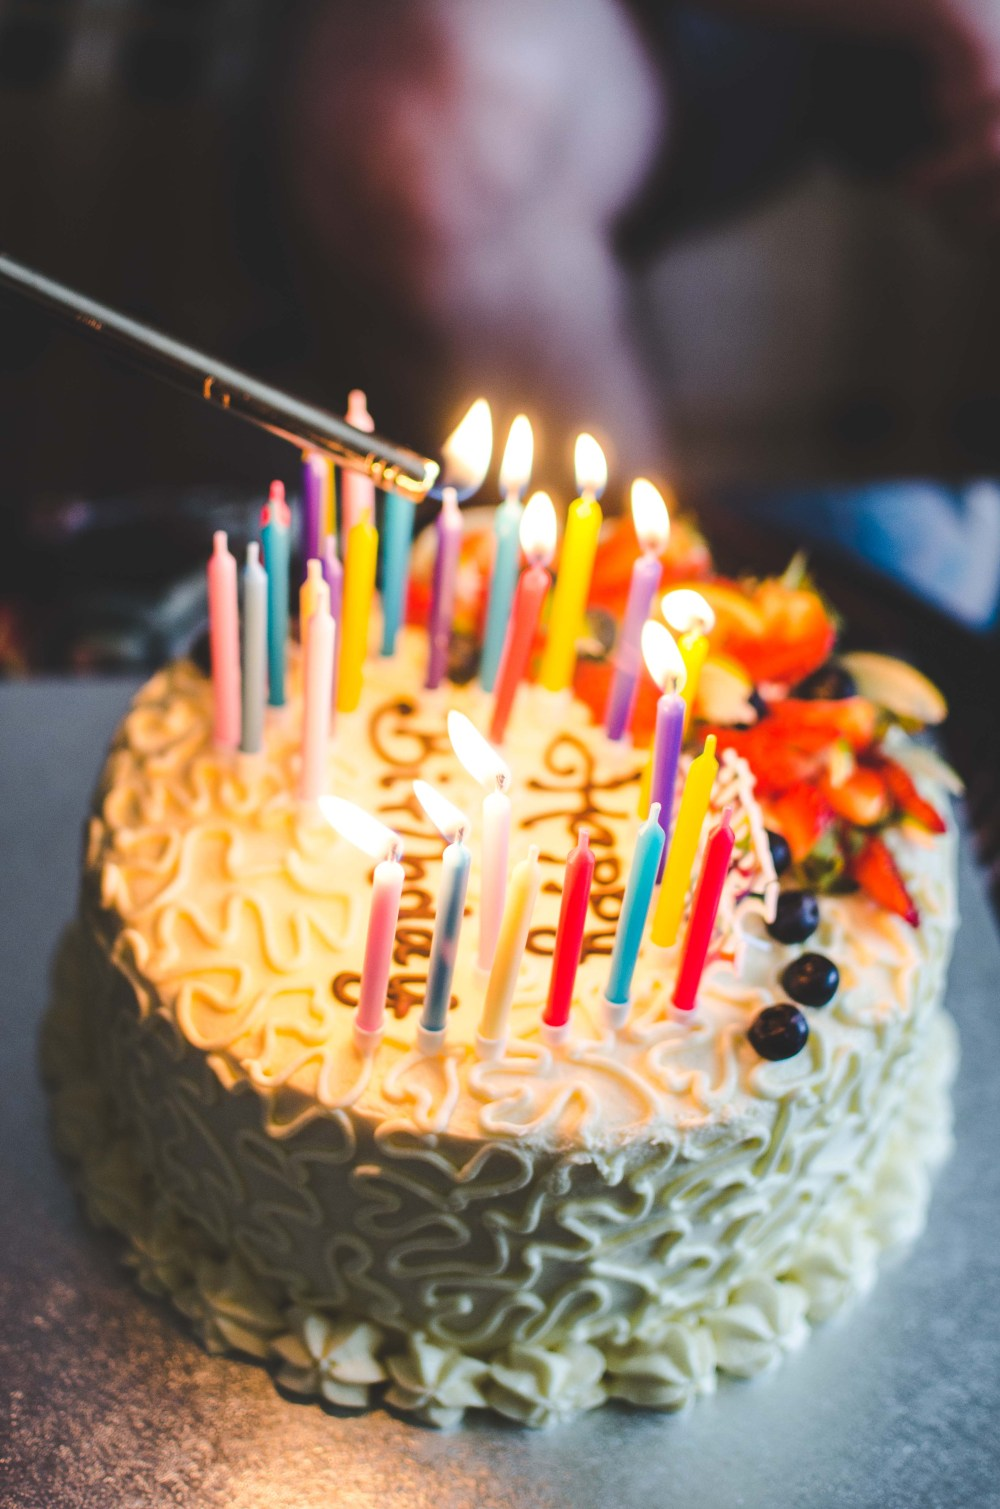 Birthday Cake Images Download For Mobile : birthday, images, download, mobile, Birthday, Pictures, Download, Images, Stock, Photos, Unsplash